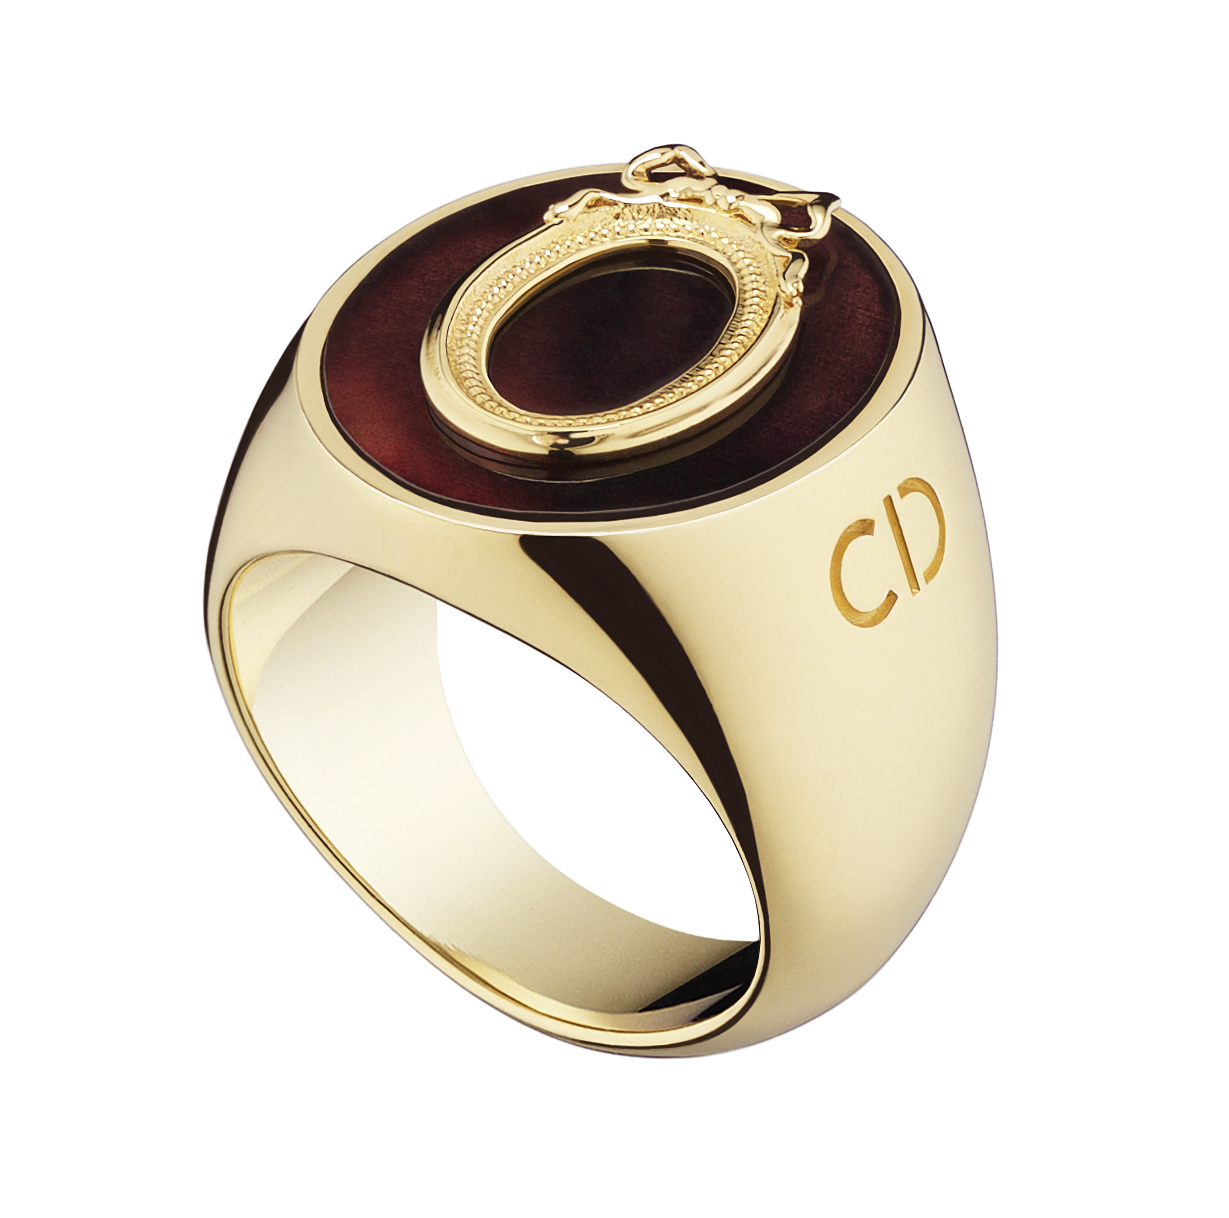 Lucky-Dior-Oval-pattern-ring-in-metal-with-gold-finish-and-fluorite